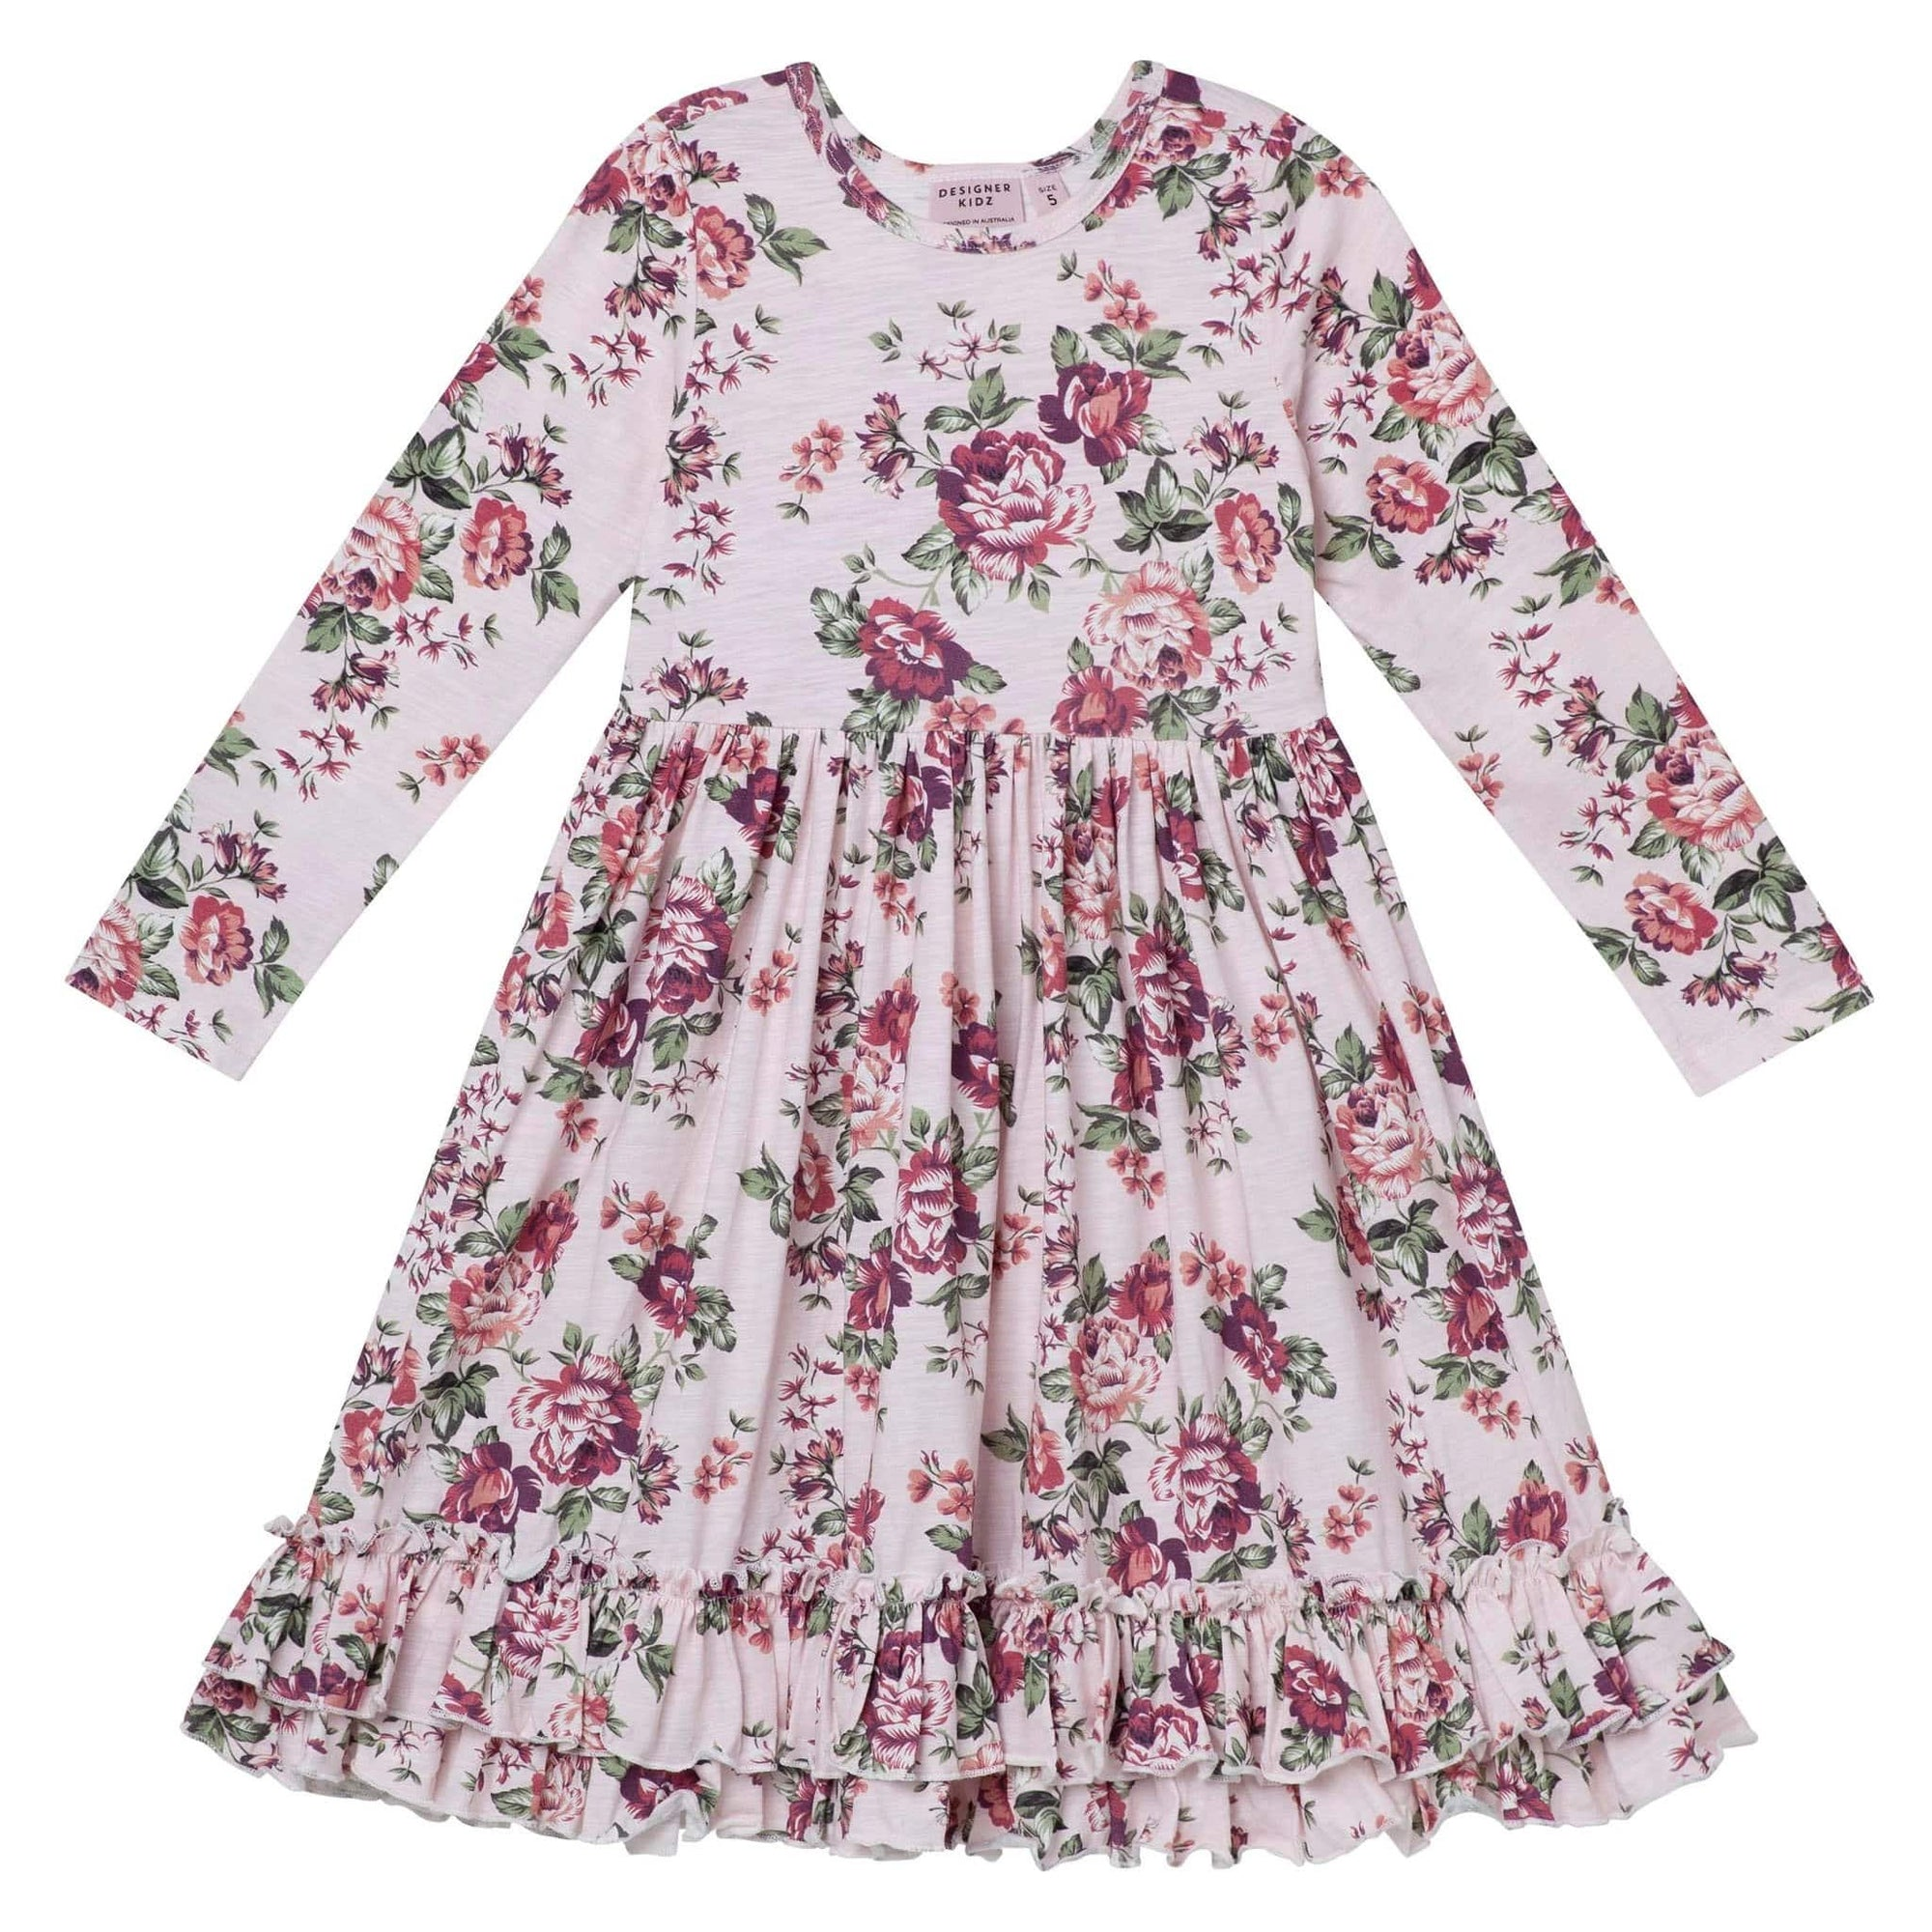 Pearl Floral L/S Swing Dress - Pink